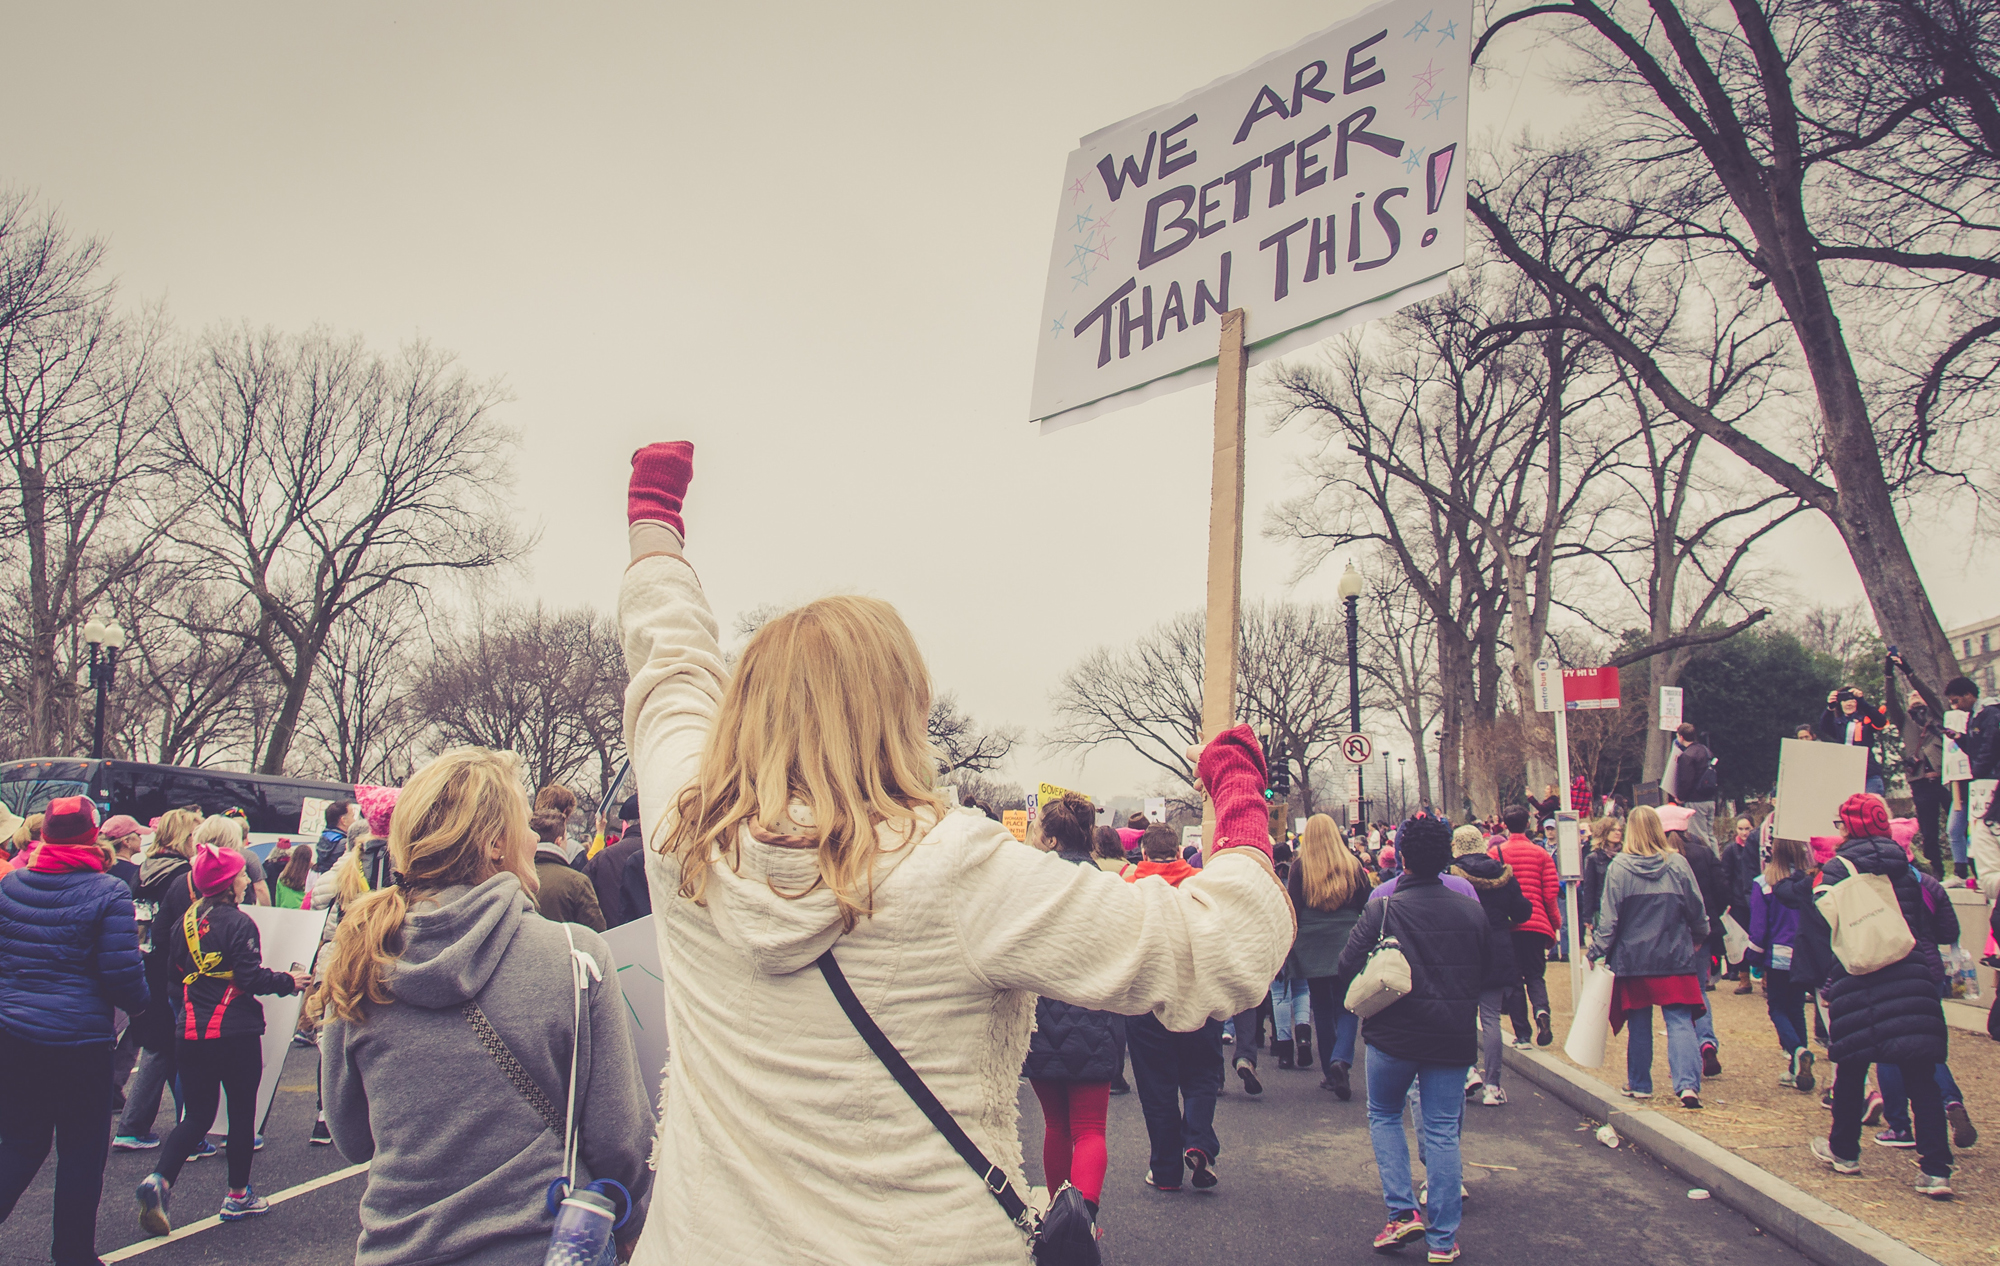 """Women holding picket sign reading """"We Are Better Than This"""" marching with many other women."""